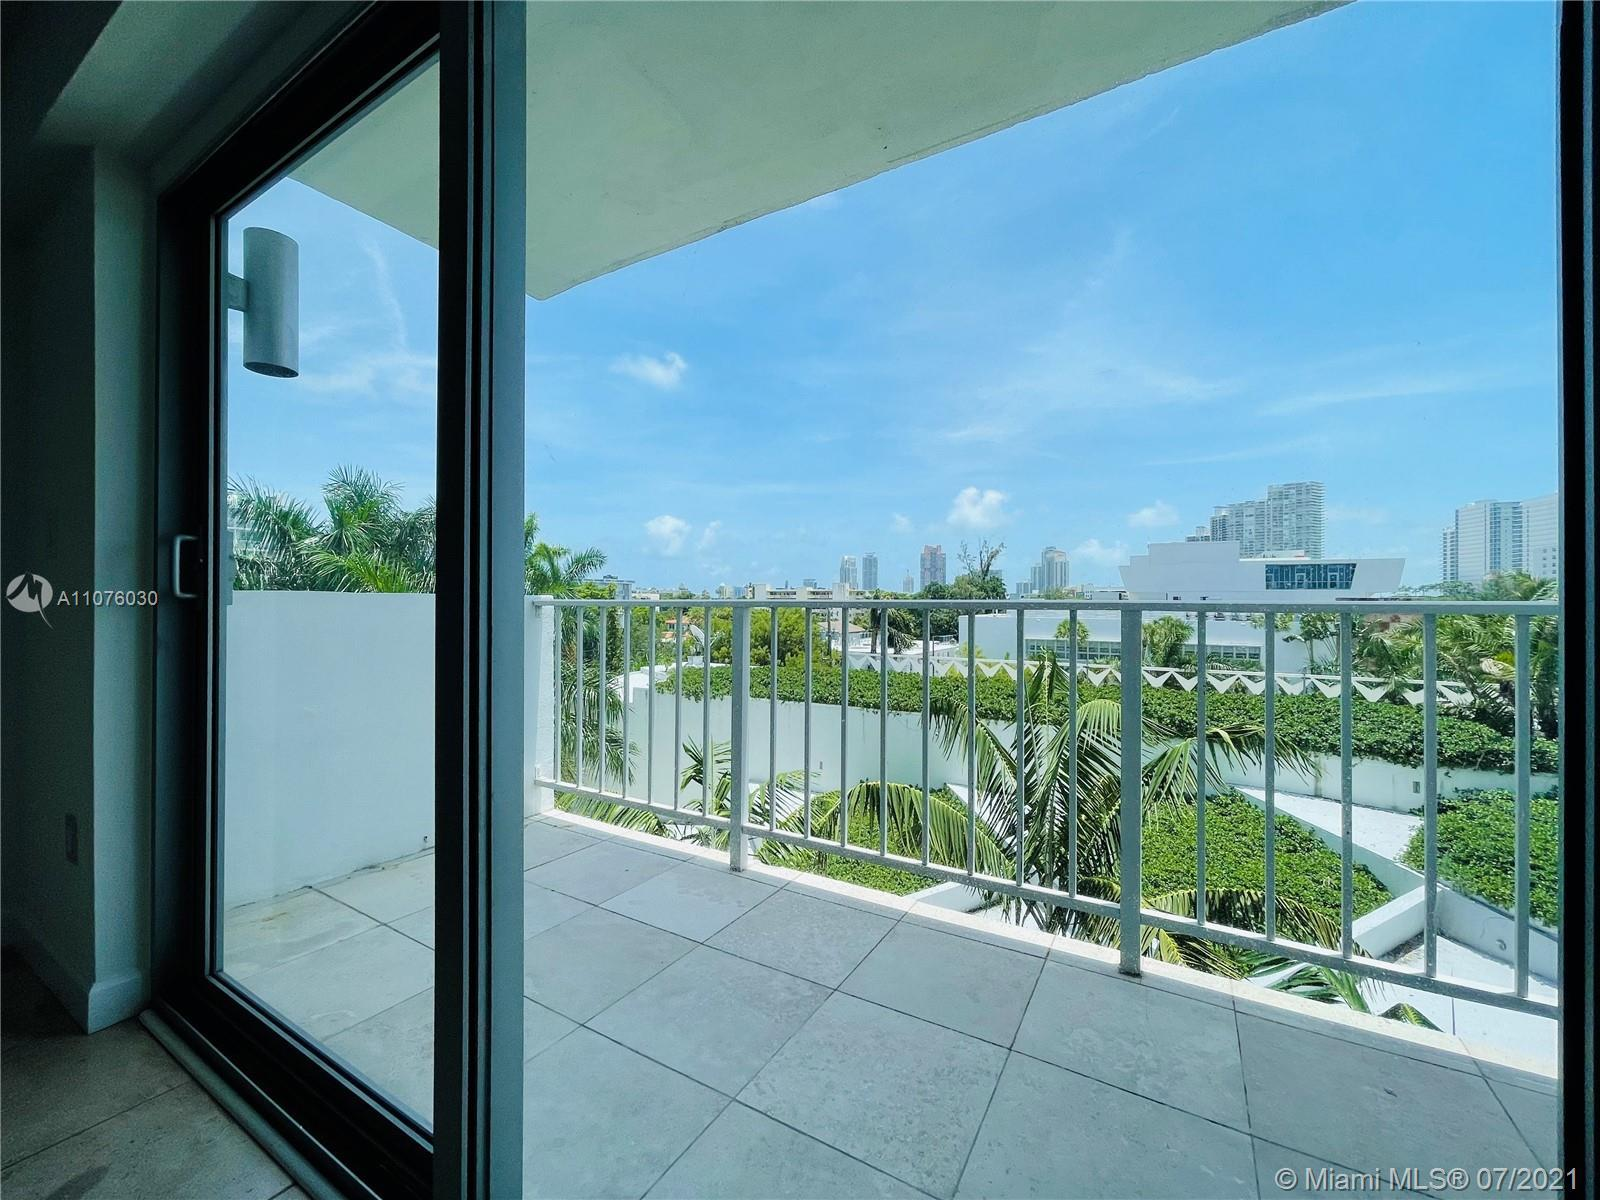 Live in Miami Beach! 730 square feet of living area. This is the only unit for sale in the building.